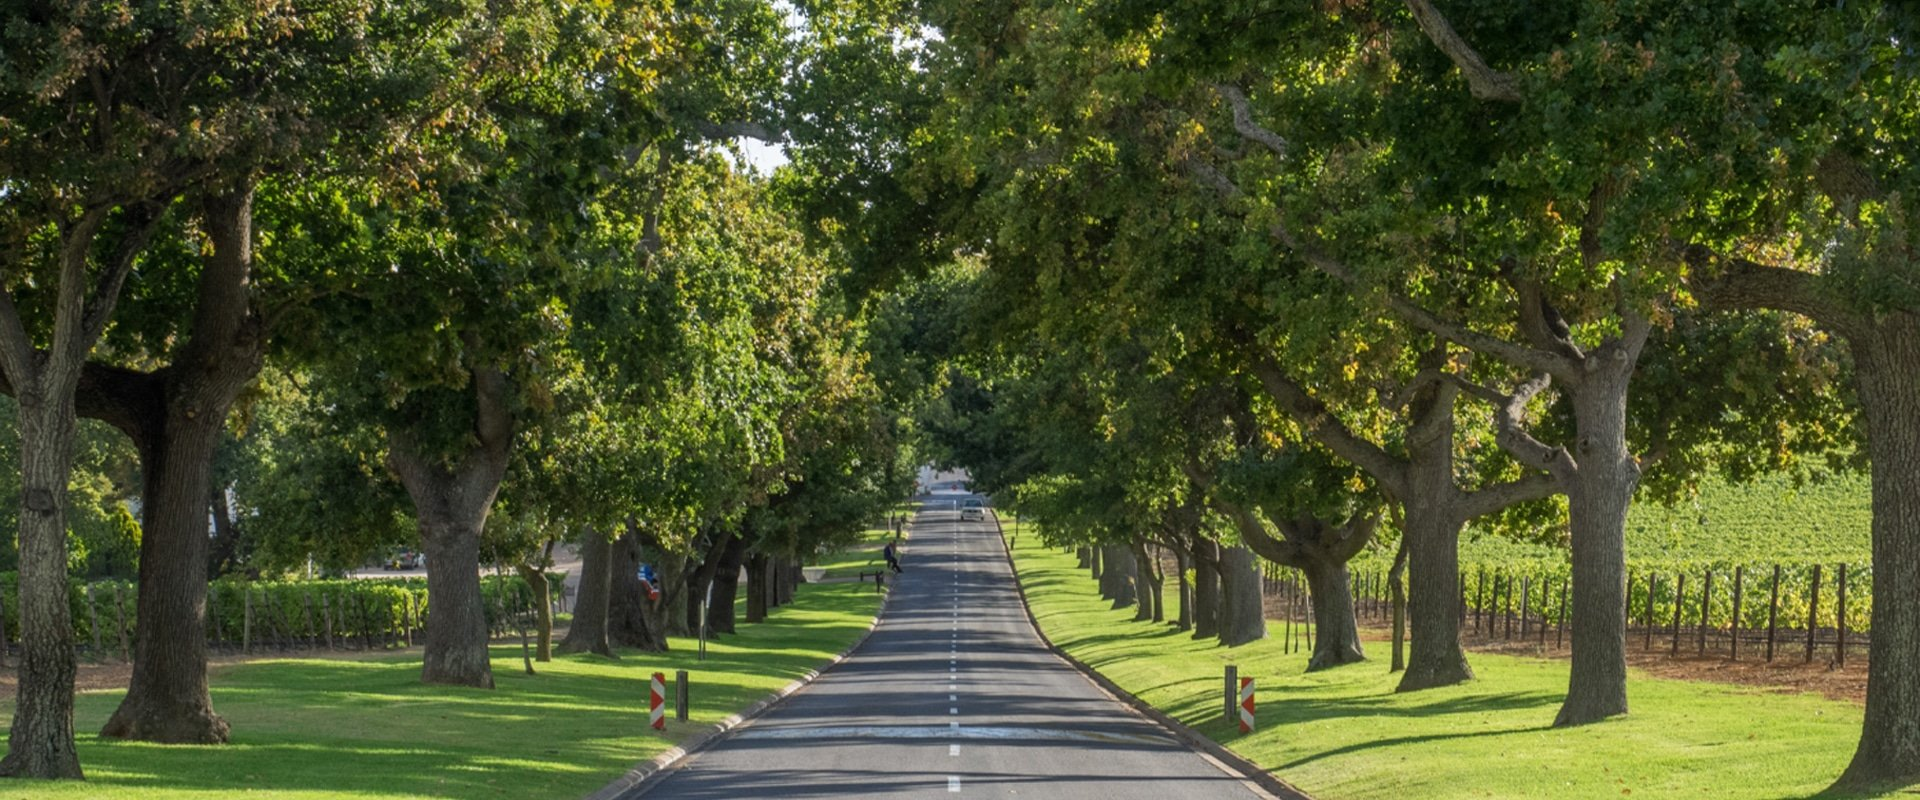 Be transferred to the winelands by a private driver in a classy vintage car